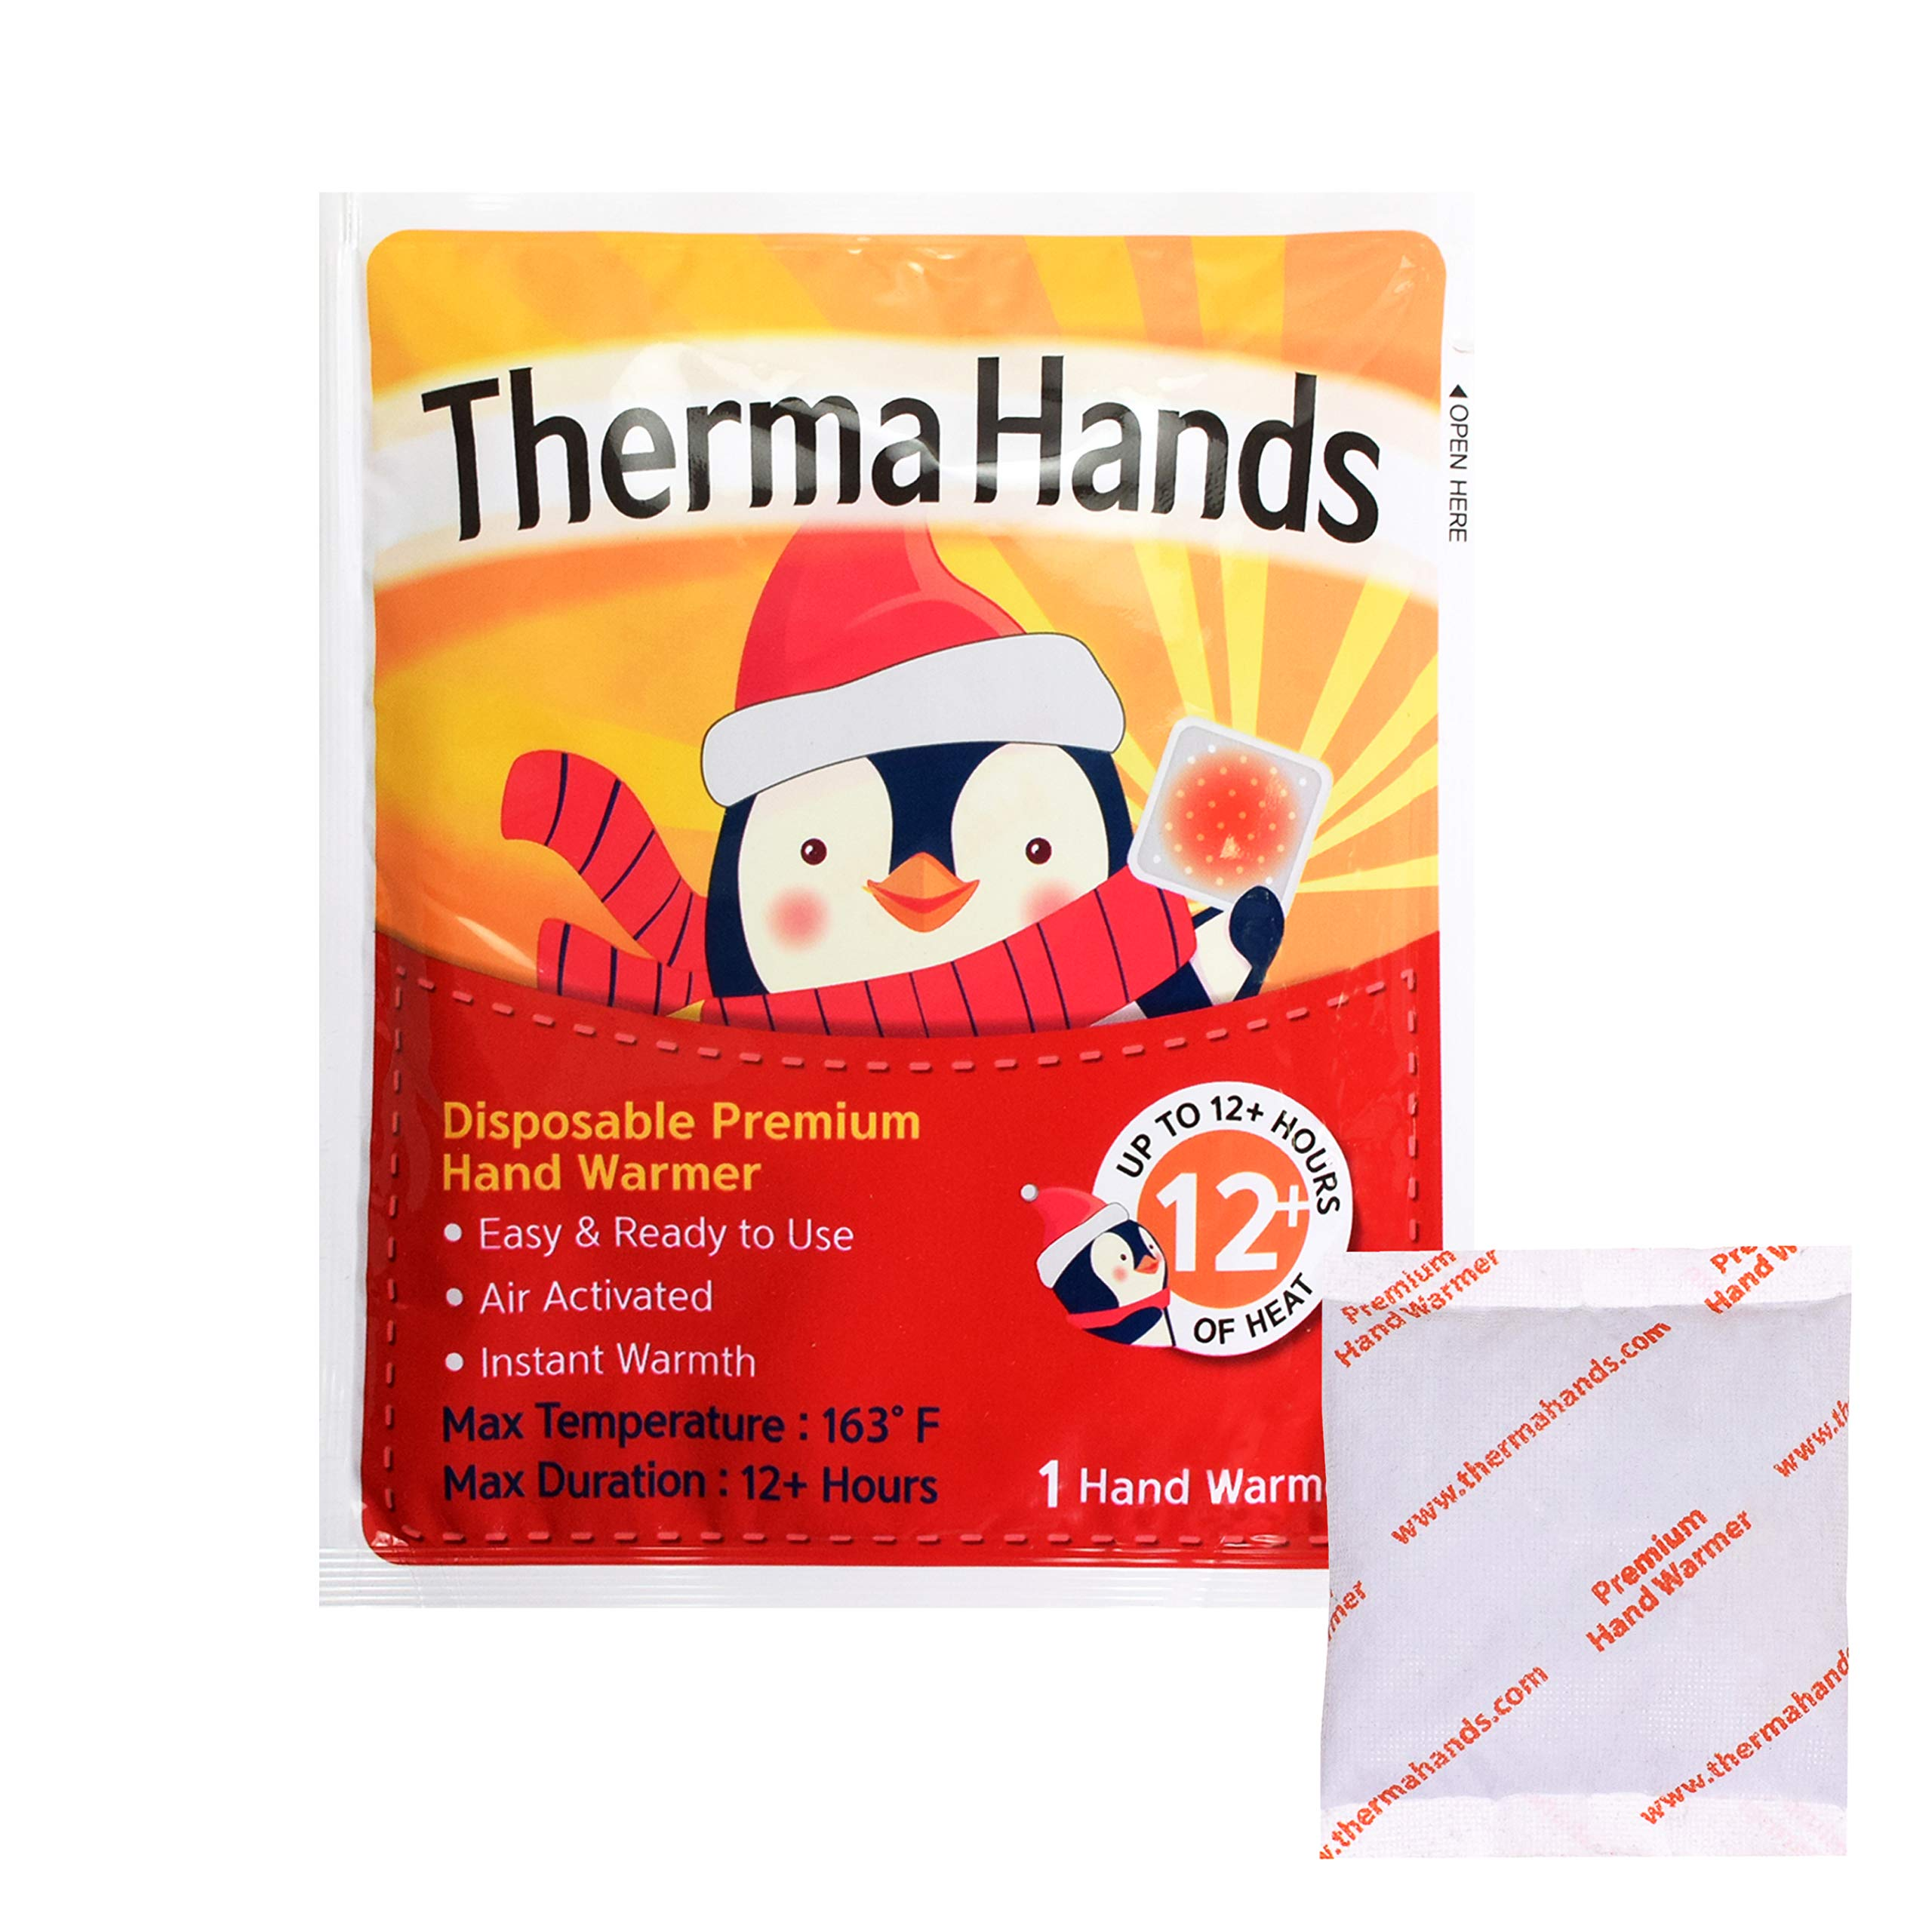 ThermaHands Hand Warmers (10 Packs) - Premium Quality (Size: 3.5 inch x 4 inch, Duration: 12+ Hours, Max Temp: 163 F) Air-Activated, Convenient, Safe, Natural, Odorless, Long Lasting Warmers